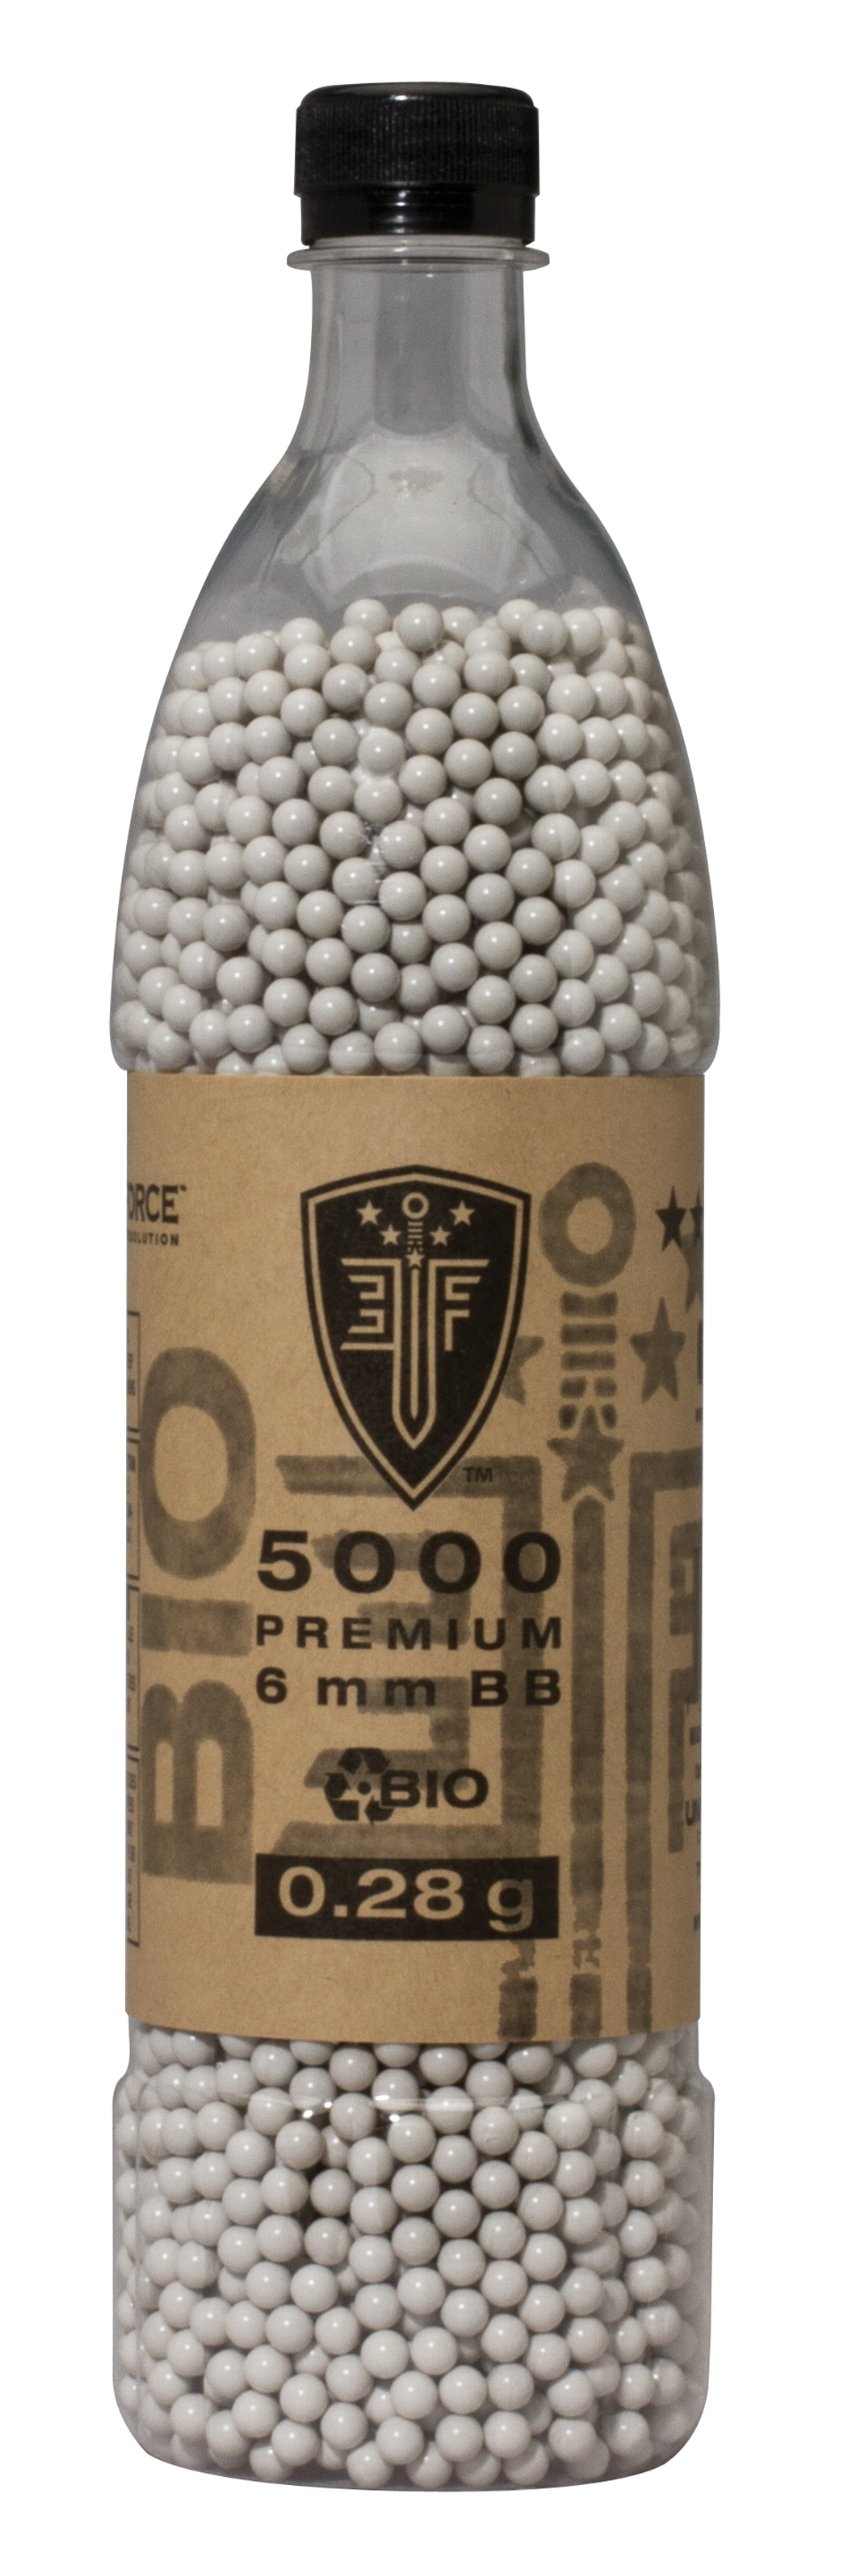 Elite Force Premium Biodegradable 6mm Airsoft BBS Ammo.25 Gram, 2700 Count